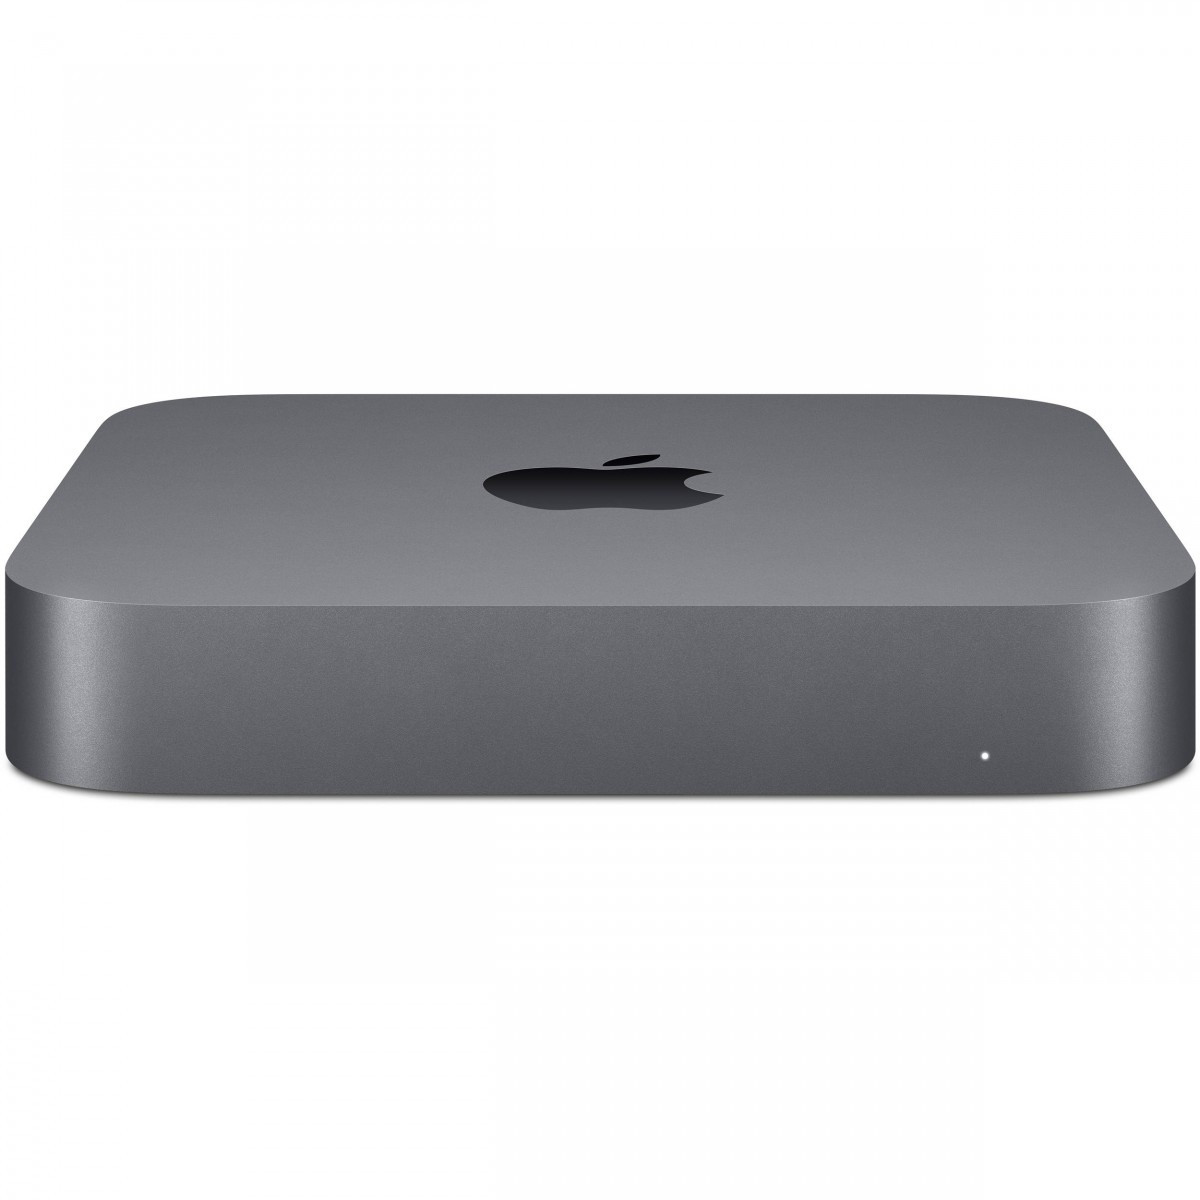 Apple Mac mini, MRTT2CZ/A